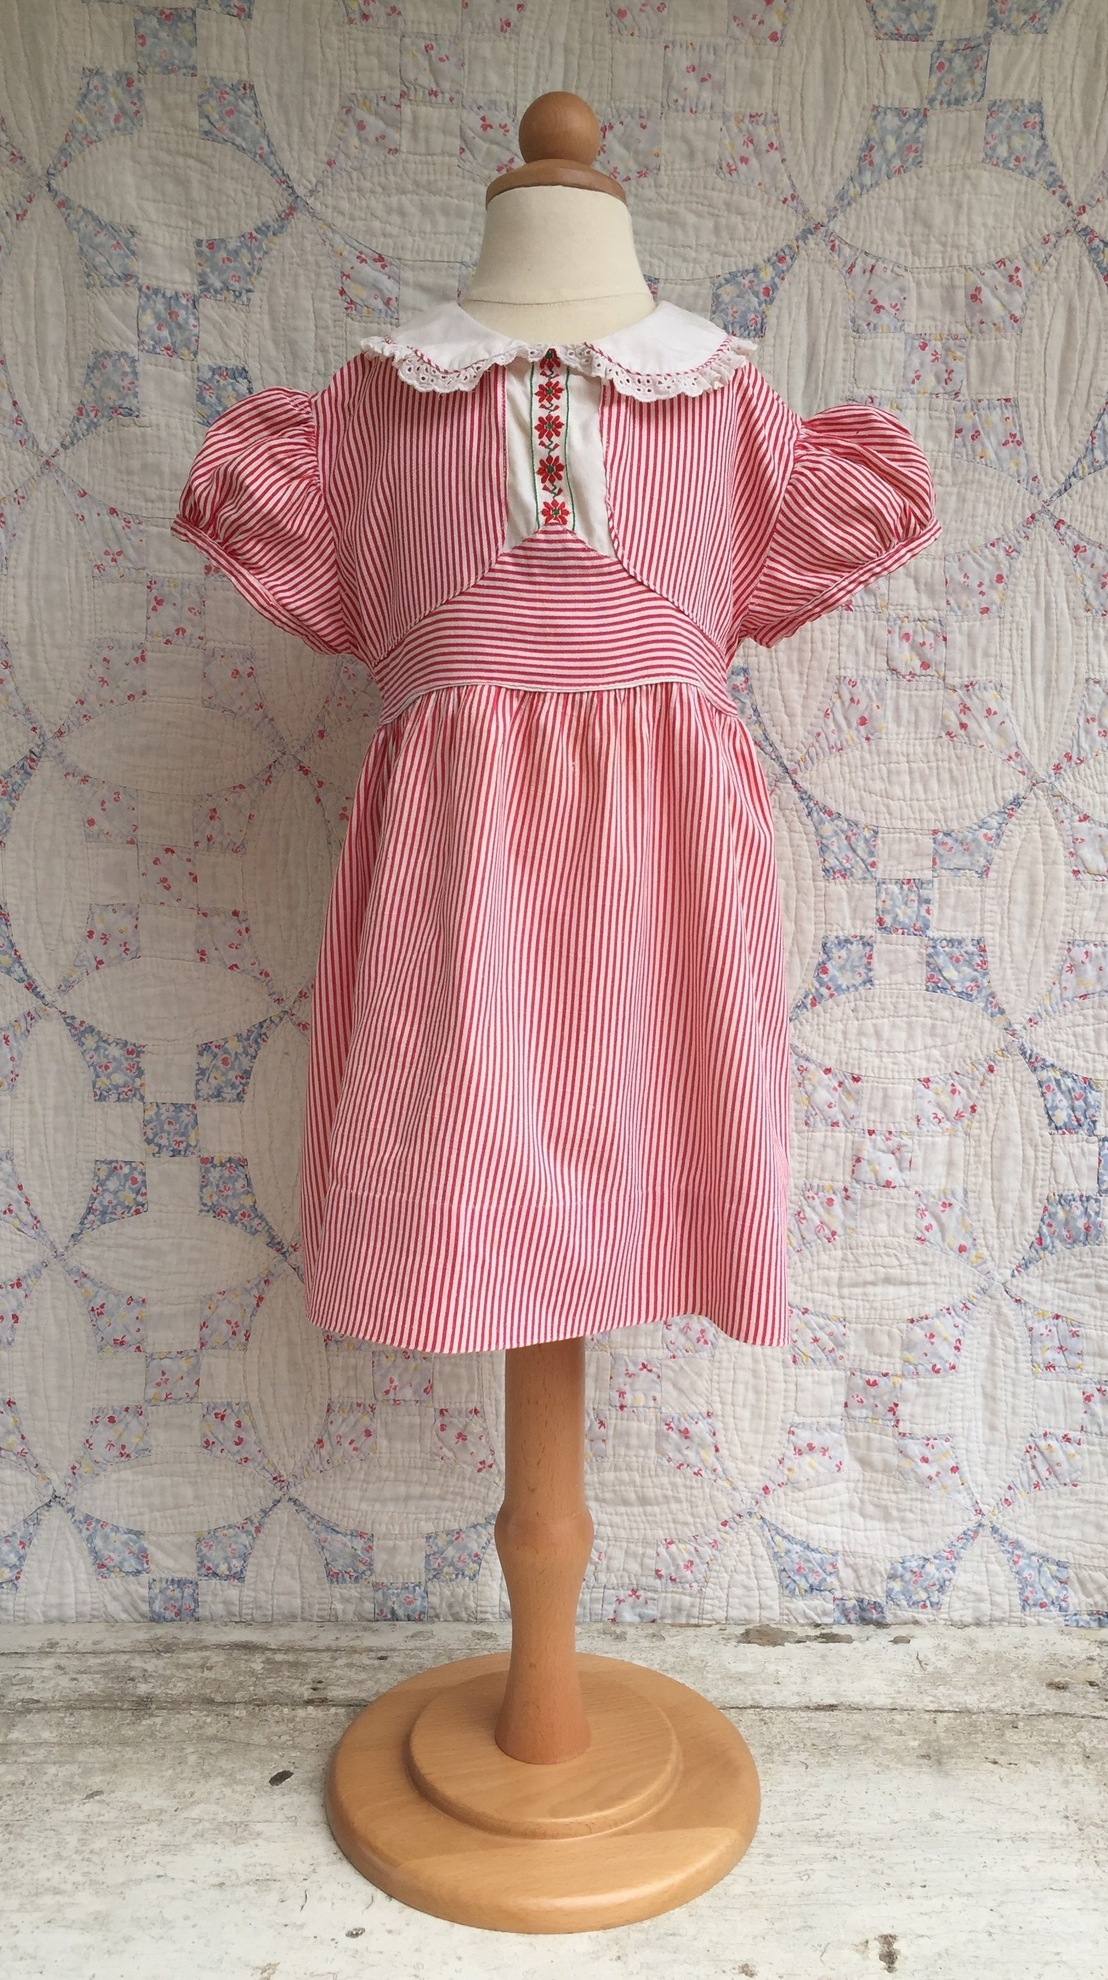 Candy Striper Dress